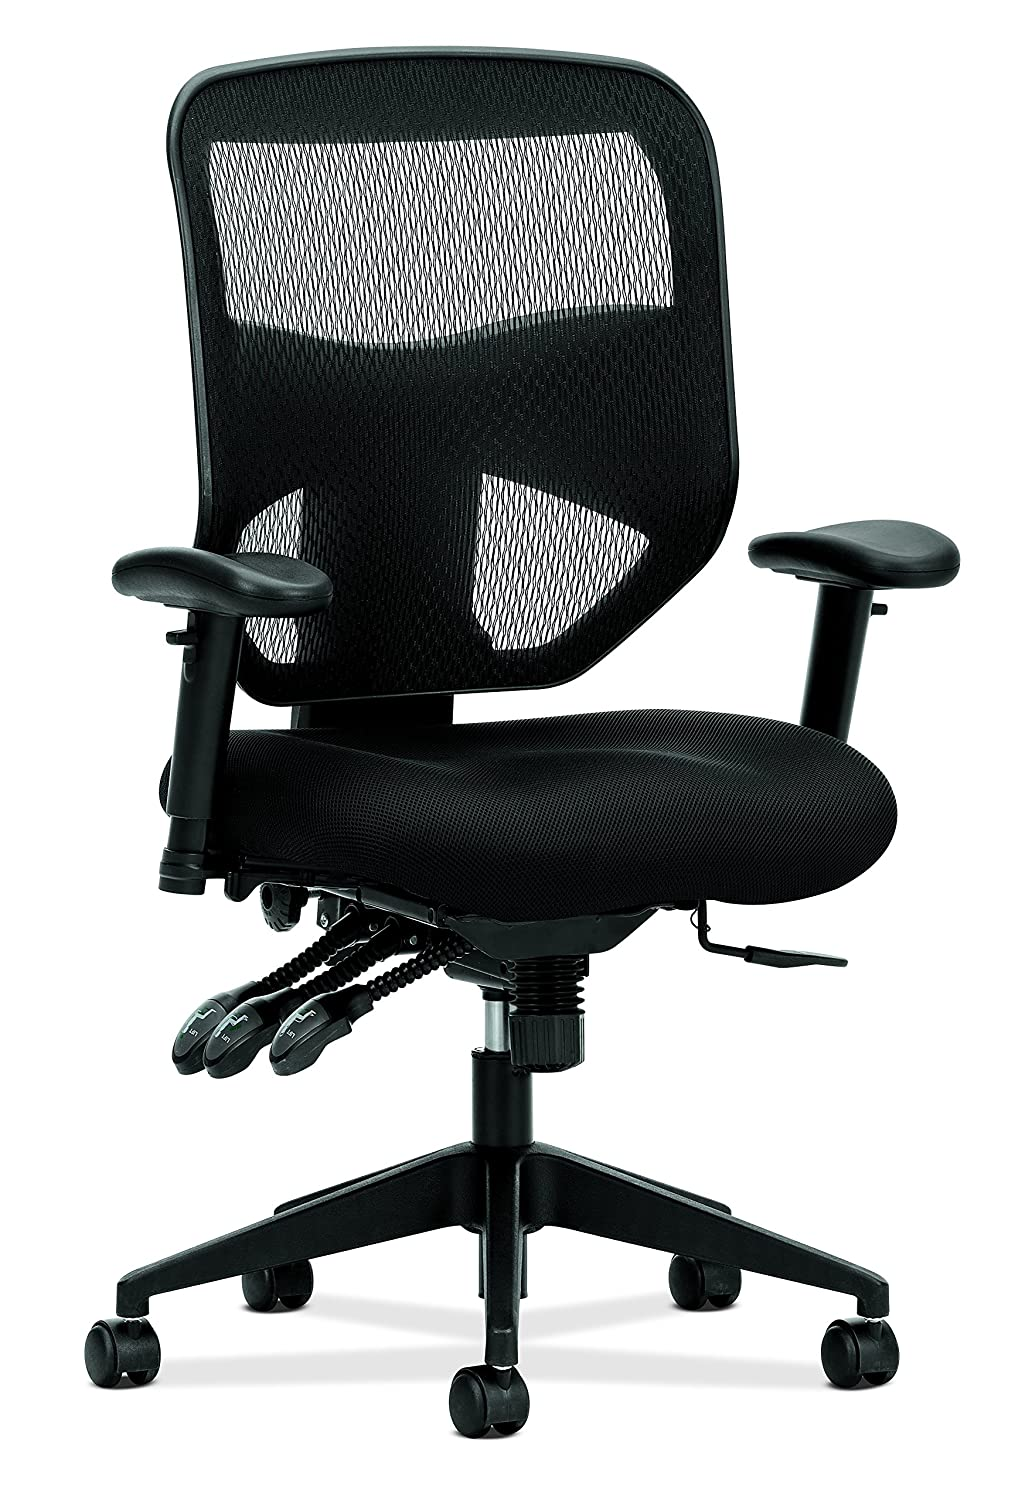 basyx by HON High Back Task Chair - Mesh Computer Chair with Arms for Office Desk - Black (HVL532)